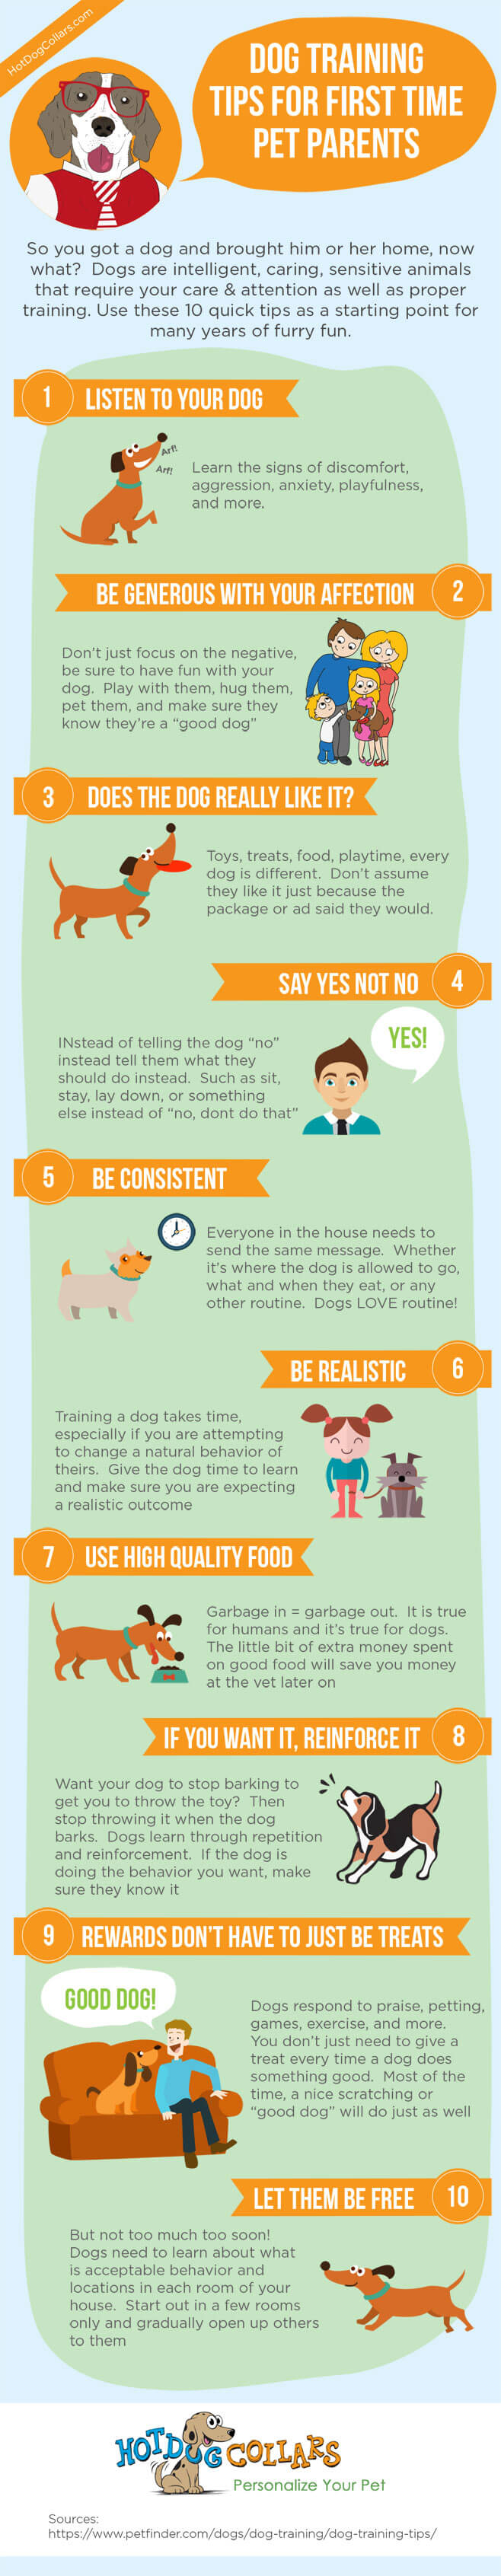 Dog Training & Teaching INFOGRAFICS - PRESS TO SEE IN FULL SIZE!